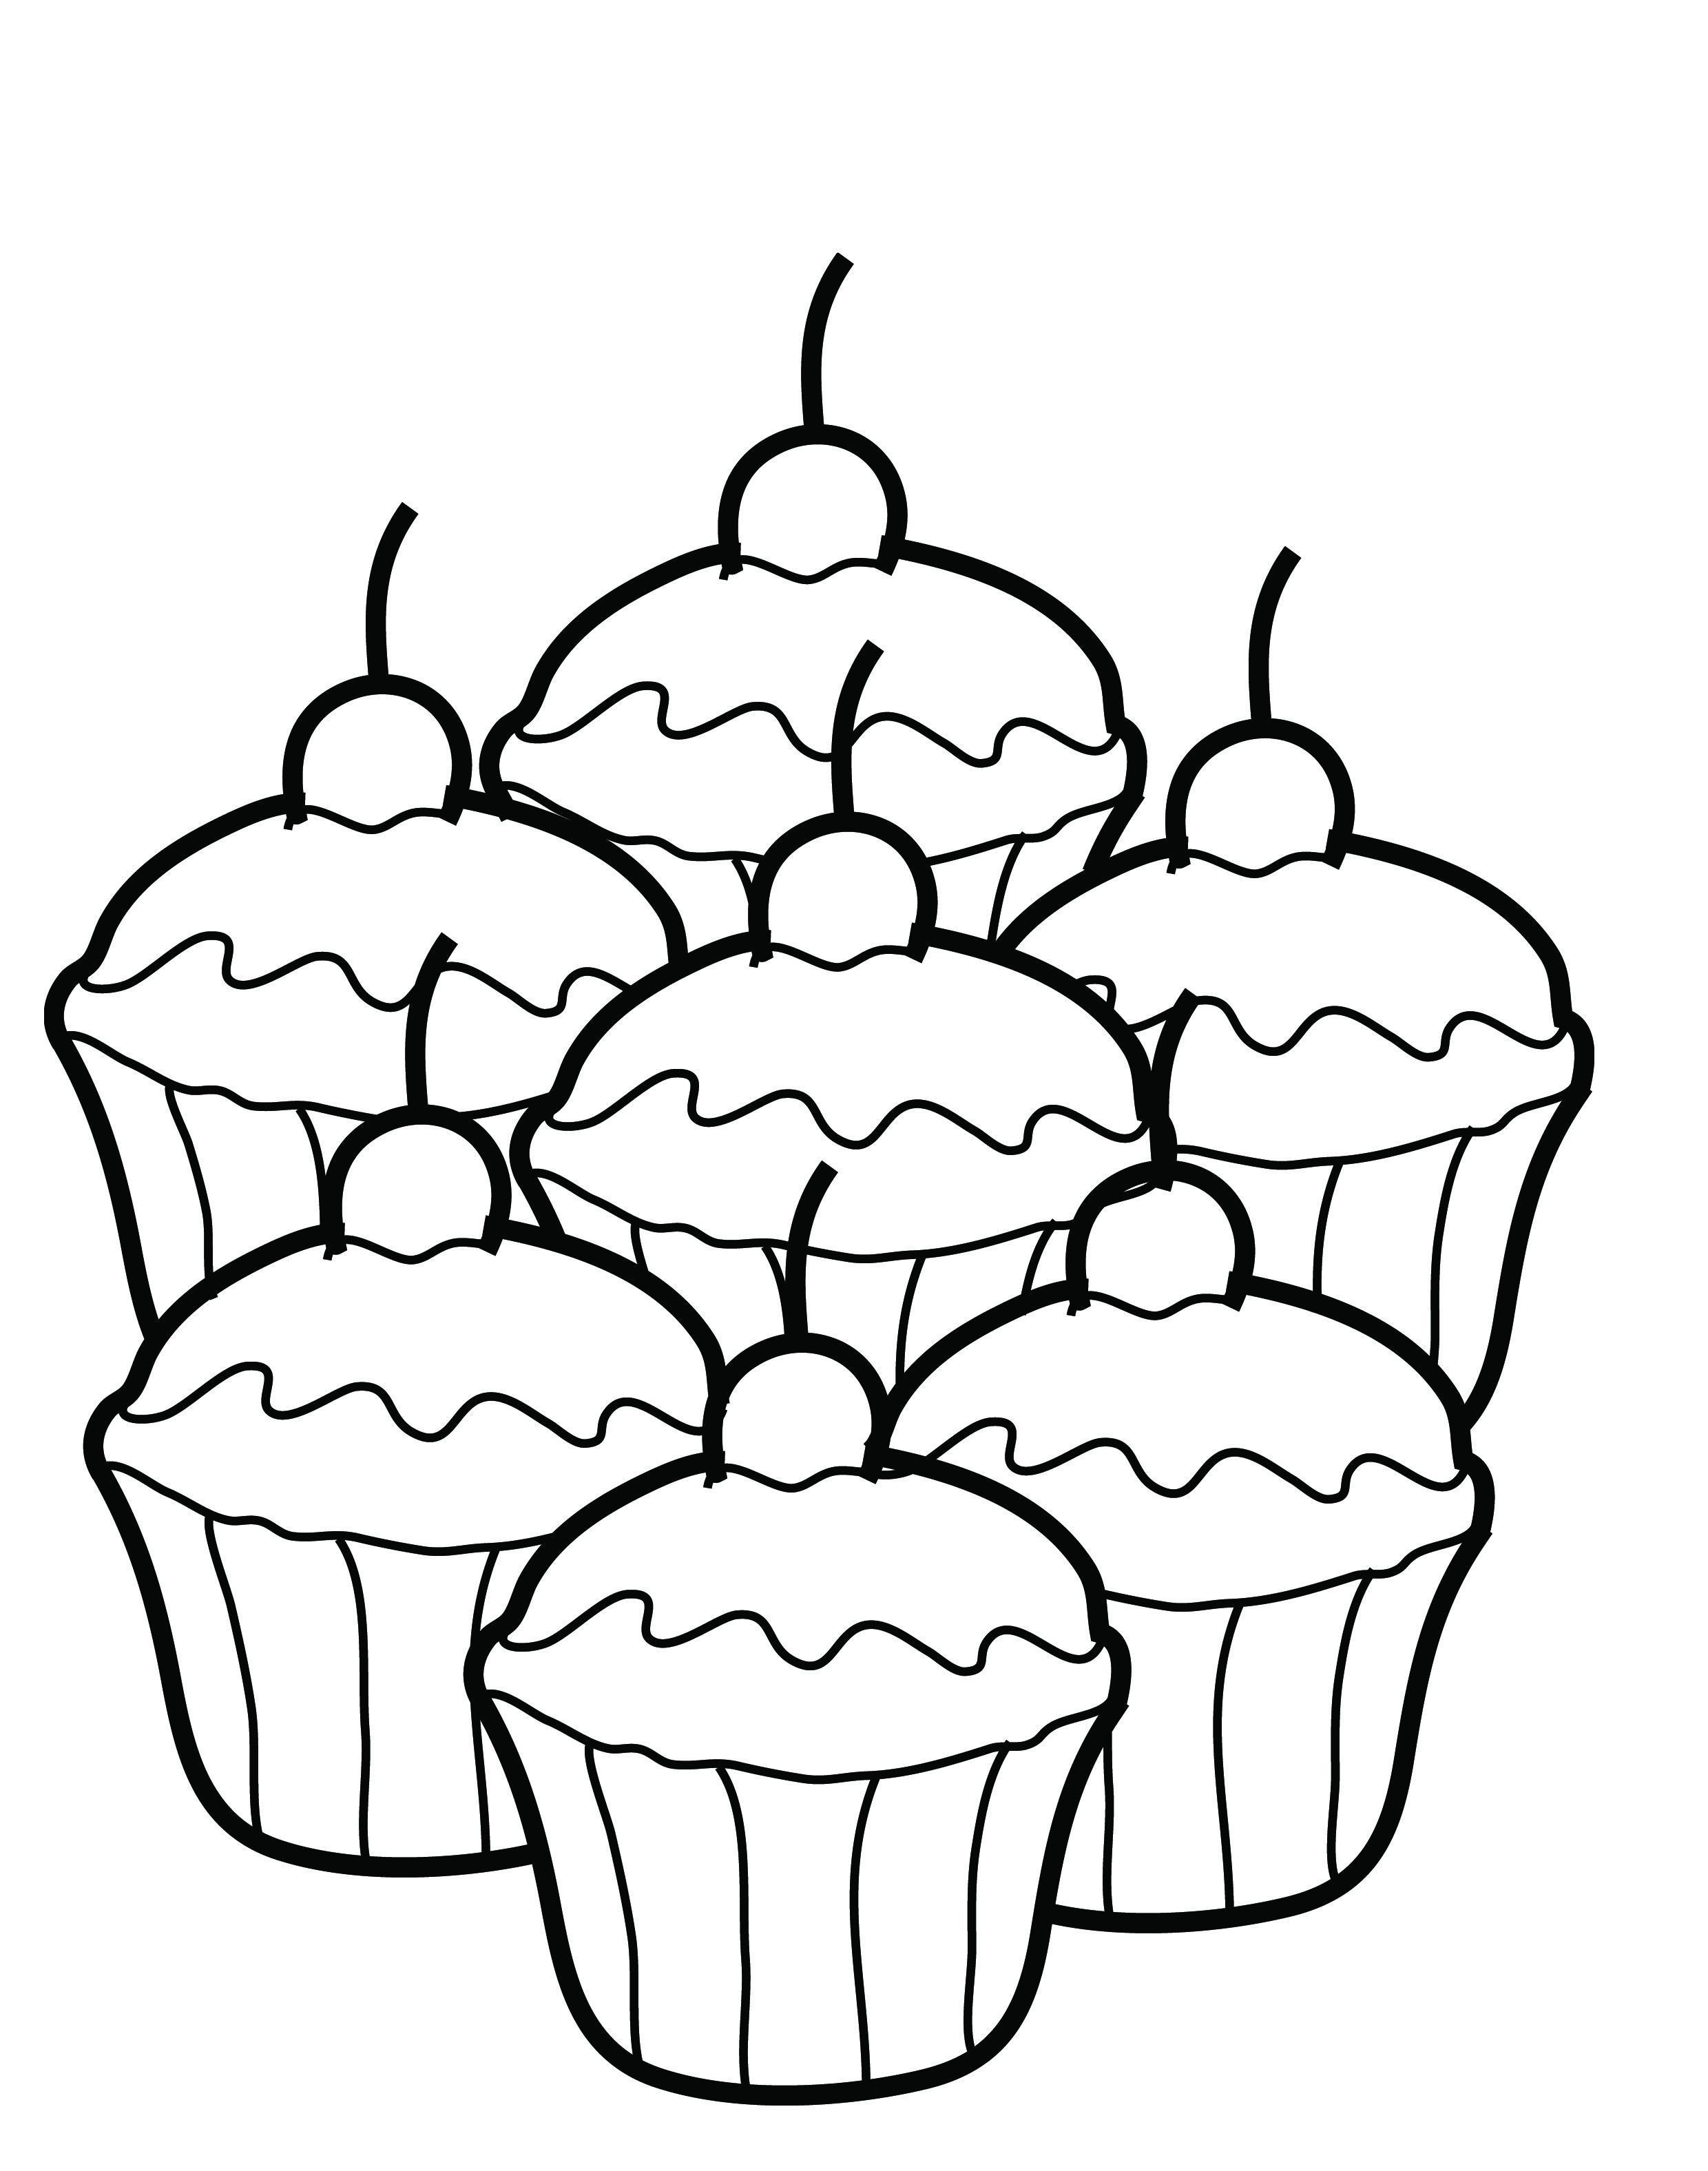 cupcake coloring pages for kids - Cloring Sheets